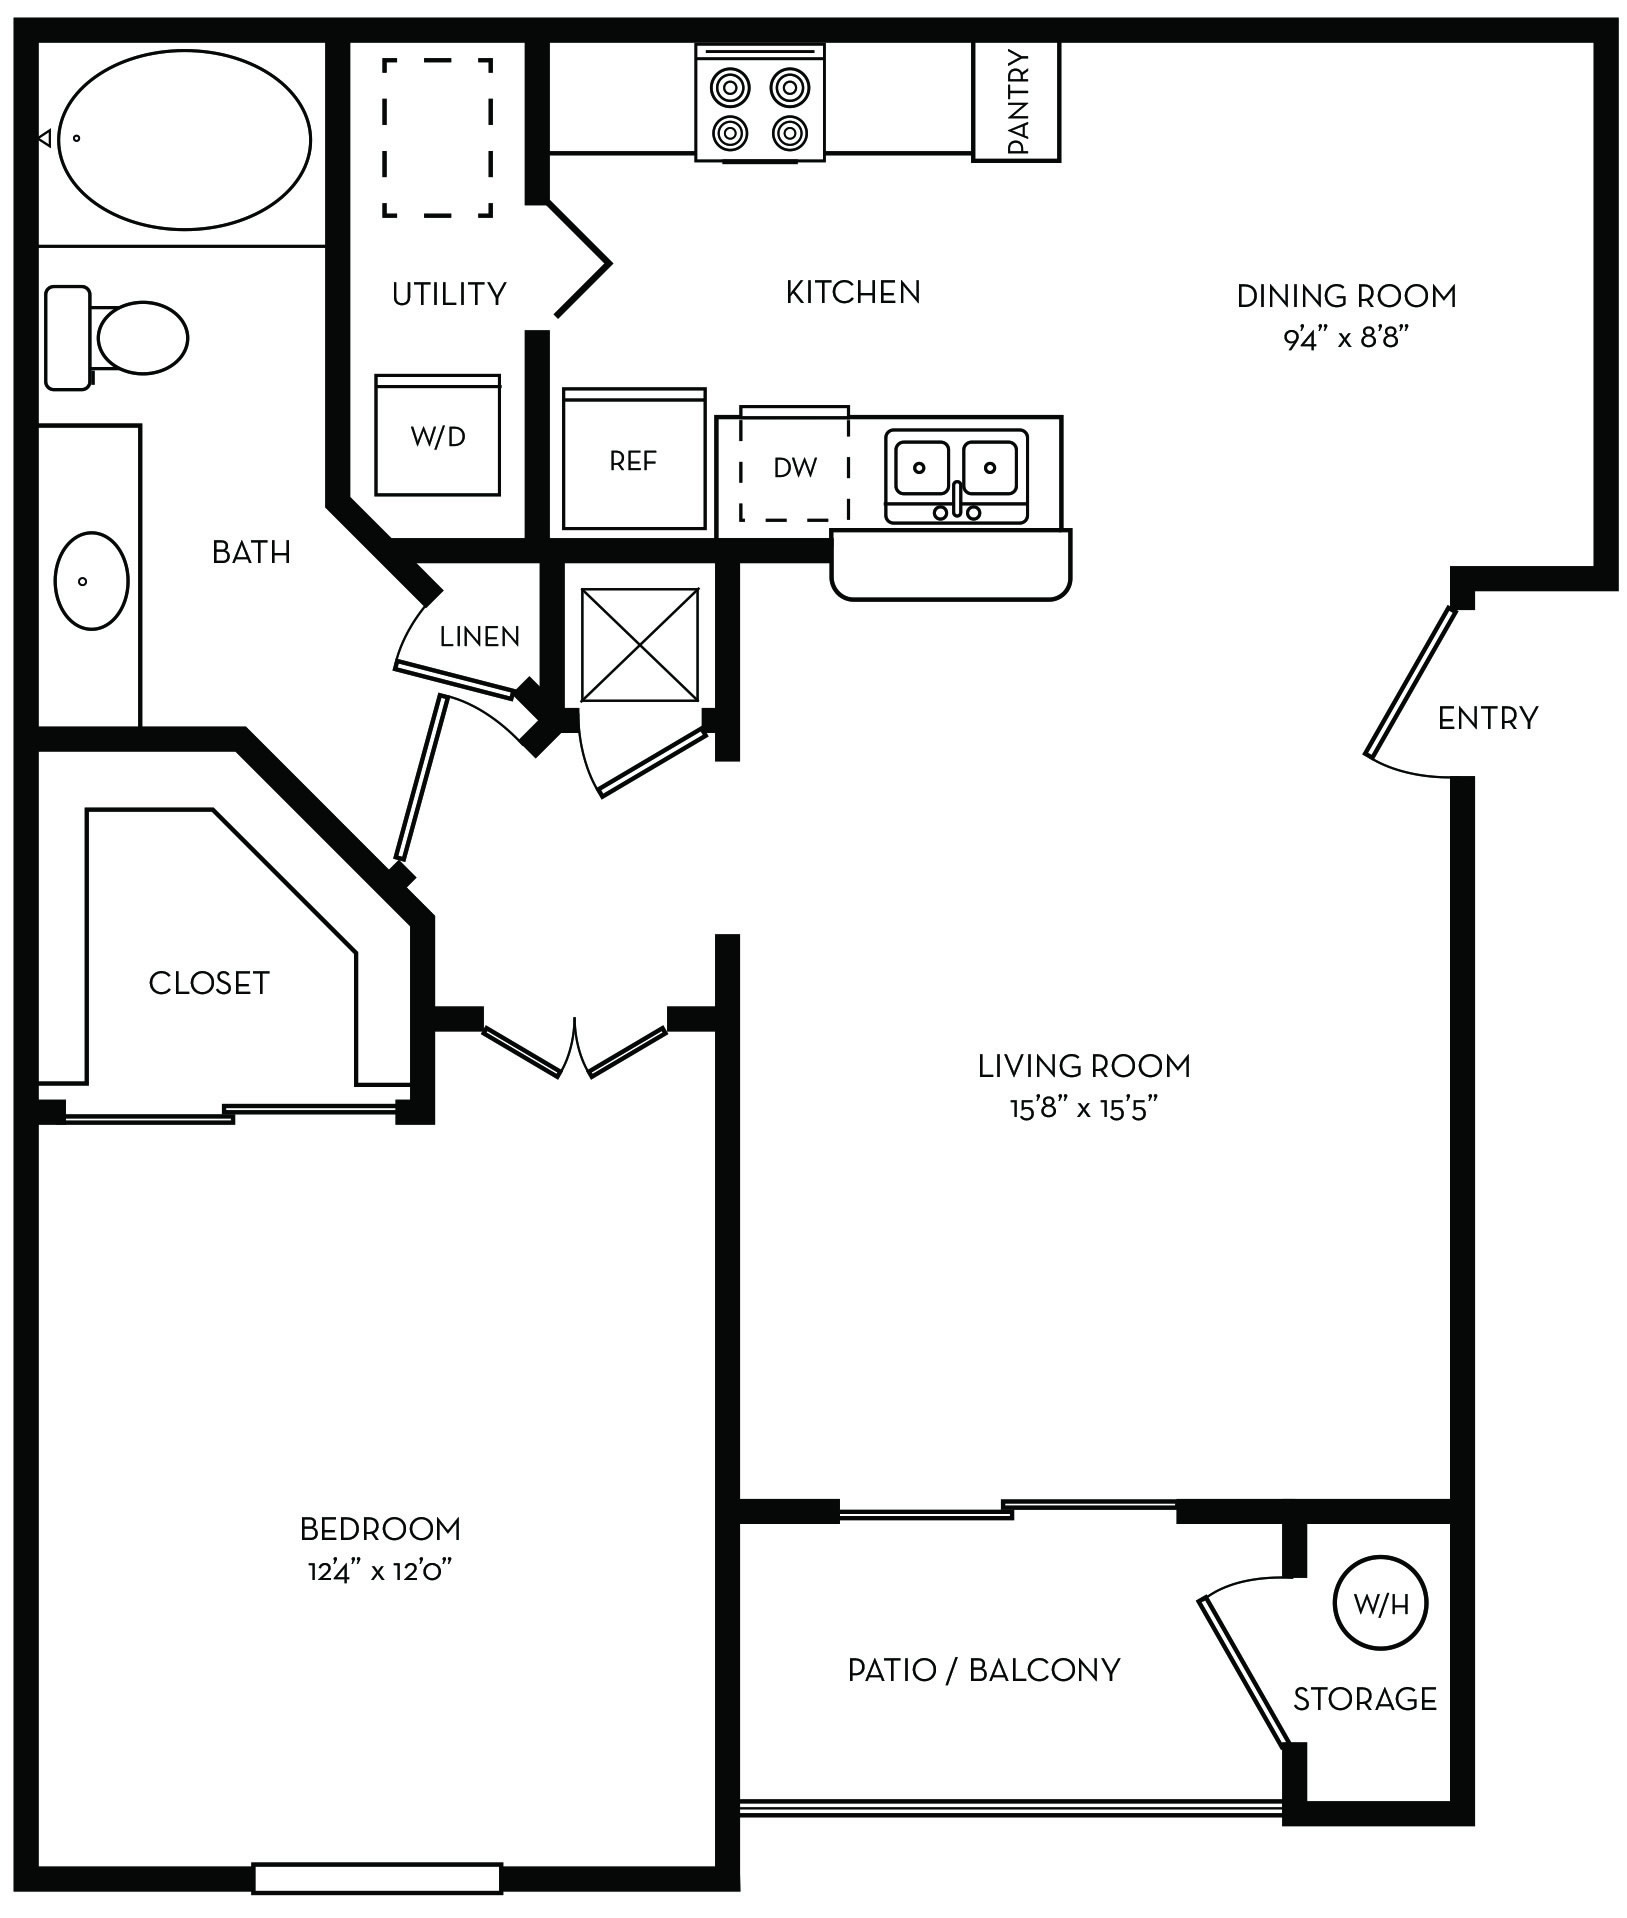 One bedroom floor plan at Lincoln Melia Medical Center Apartments in Houston